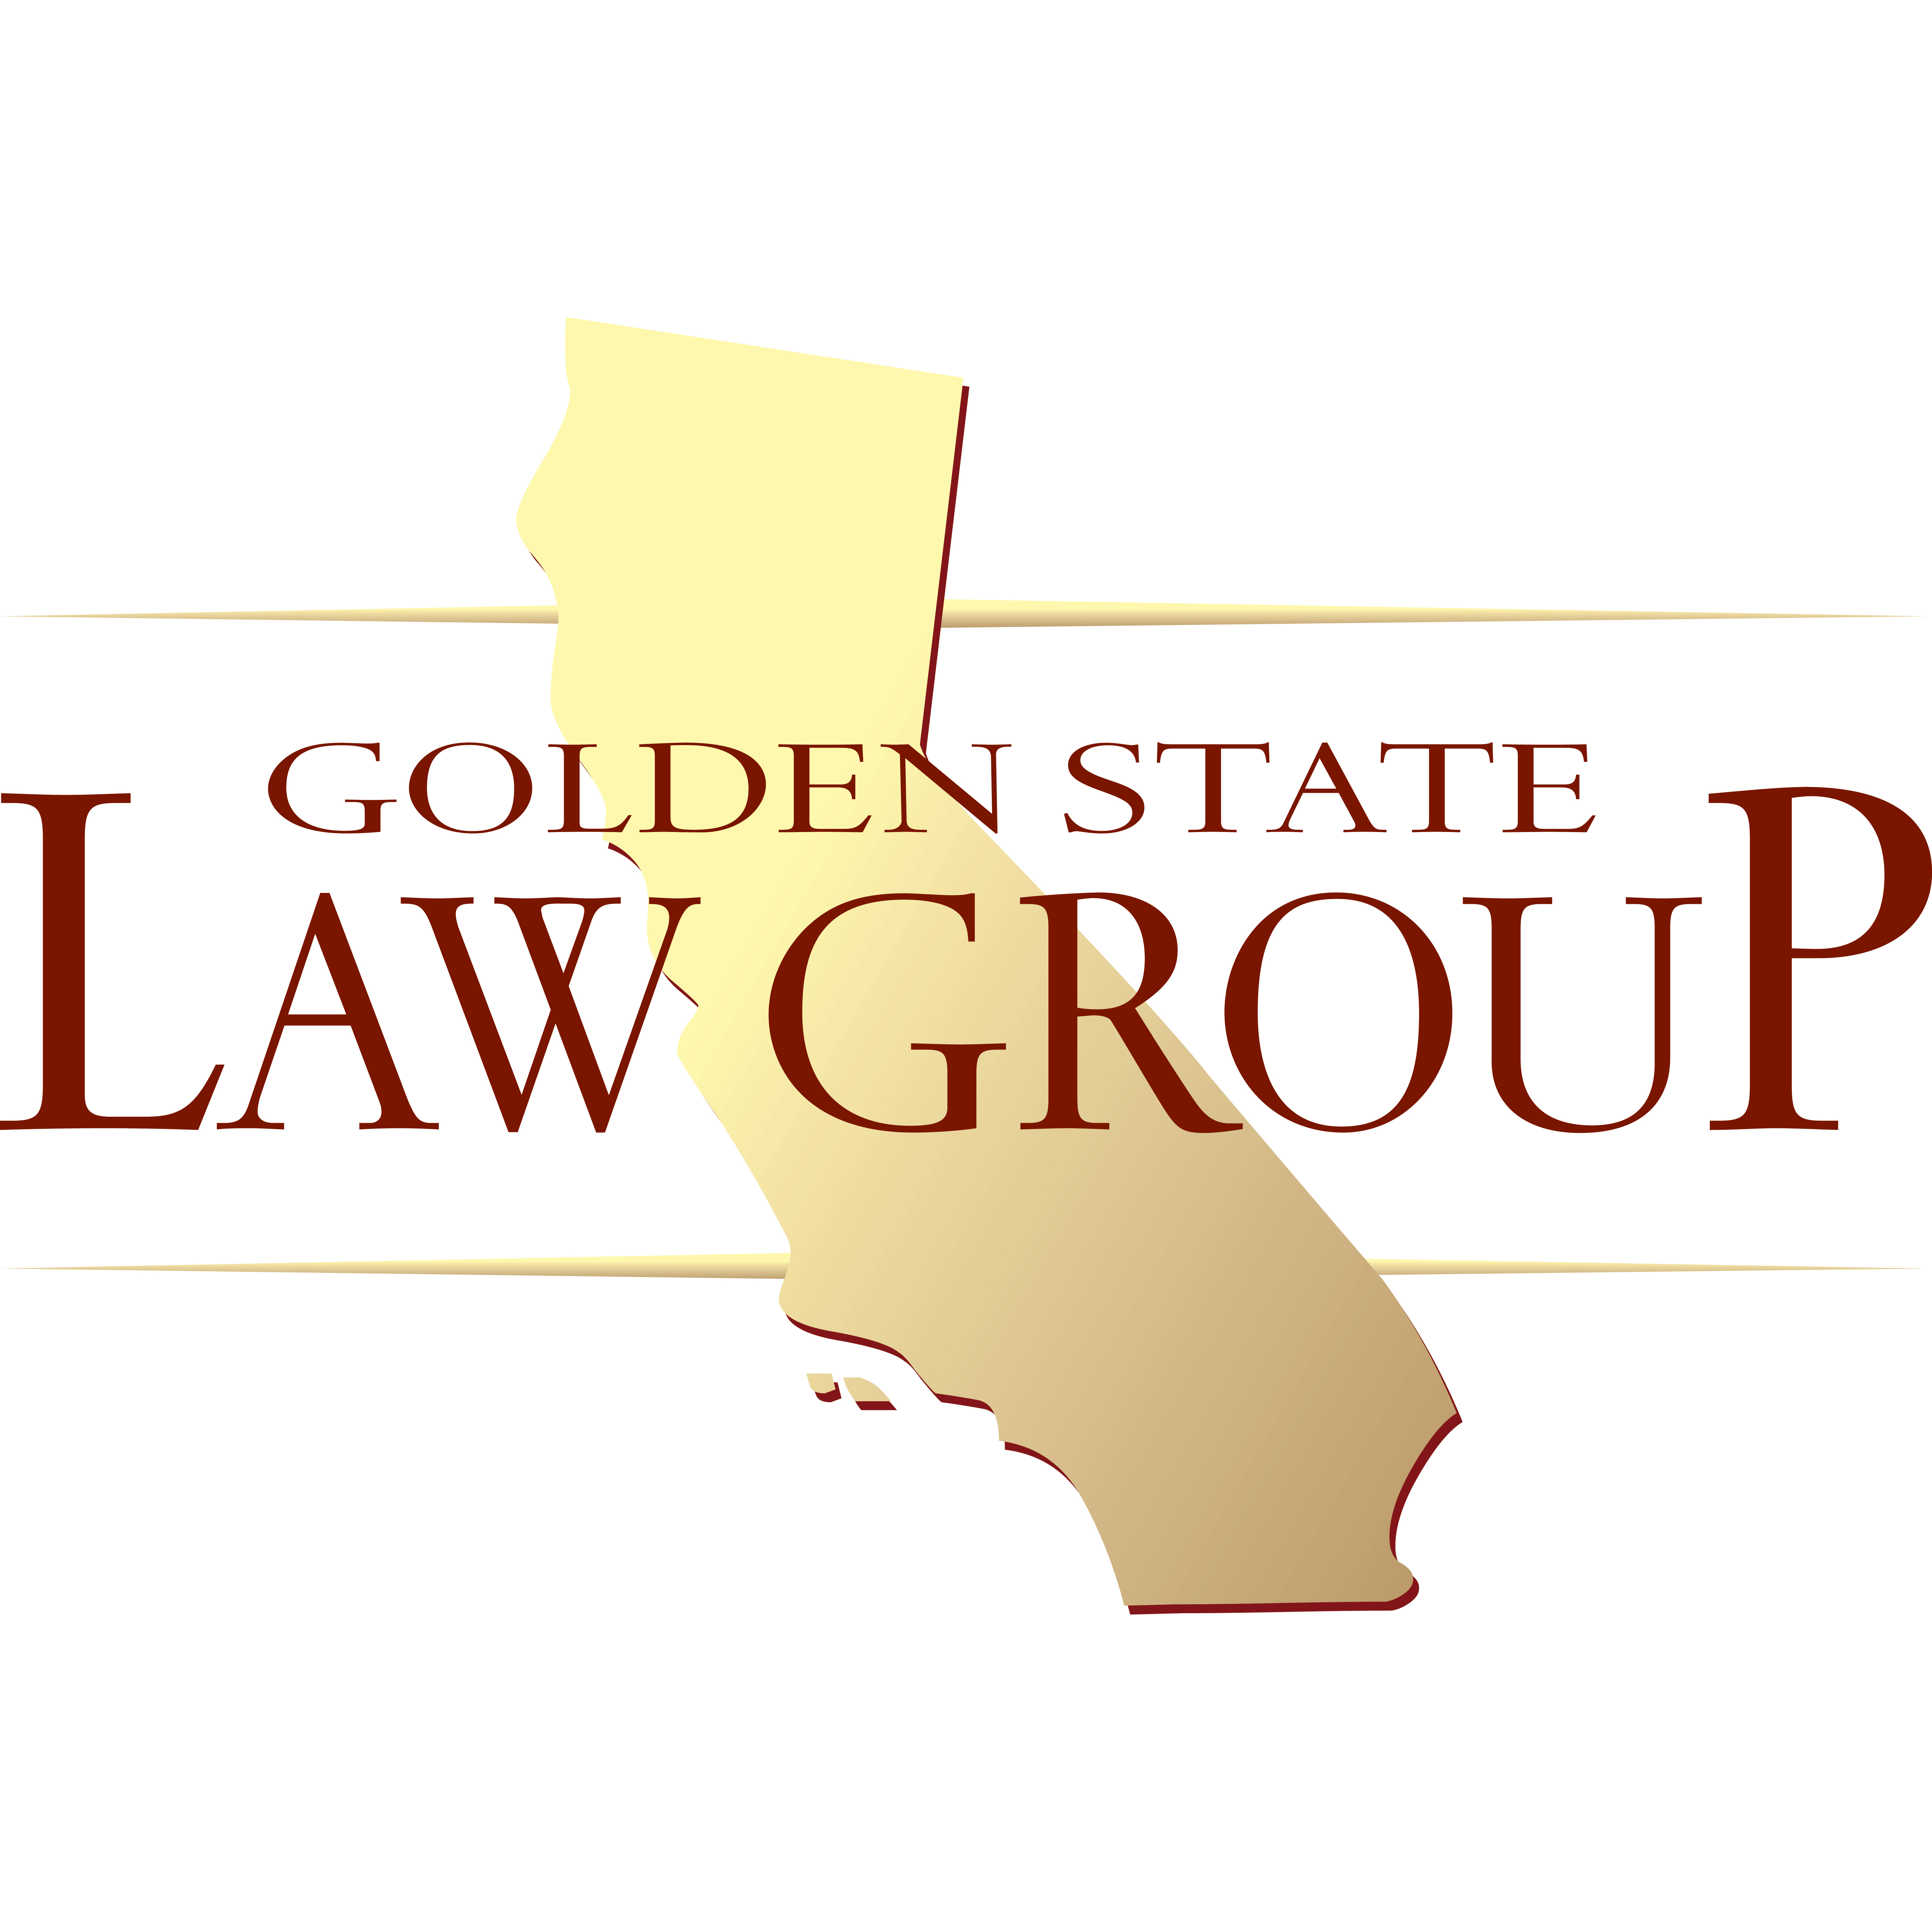 Golden State Law Group - ad image